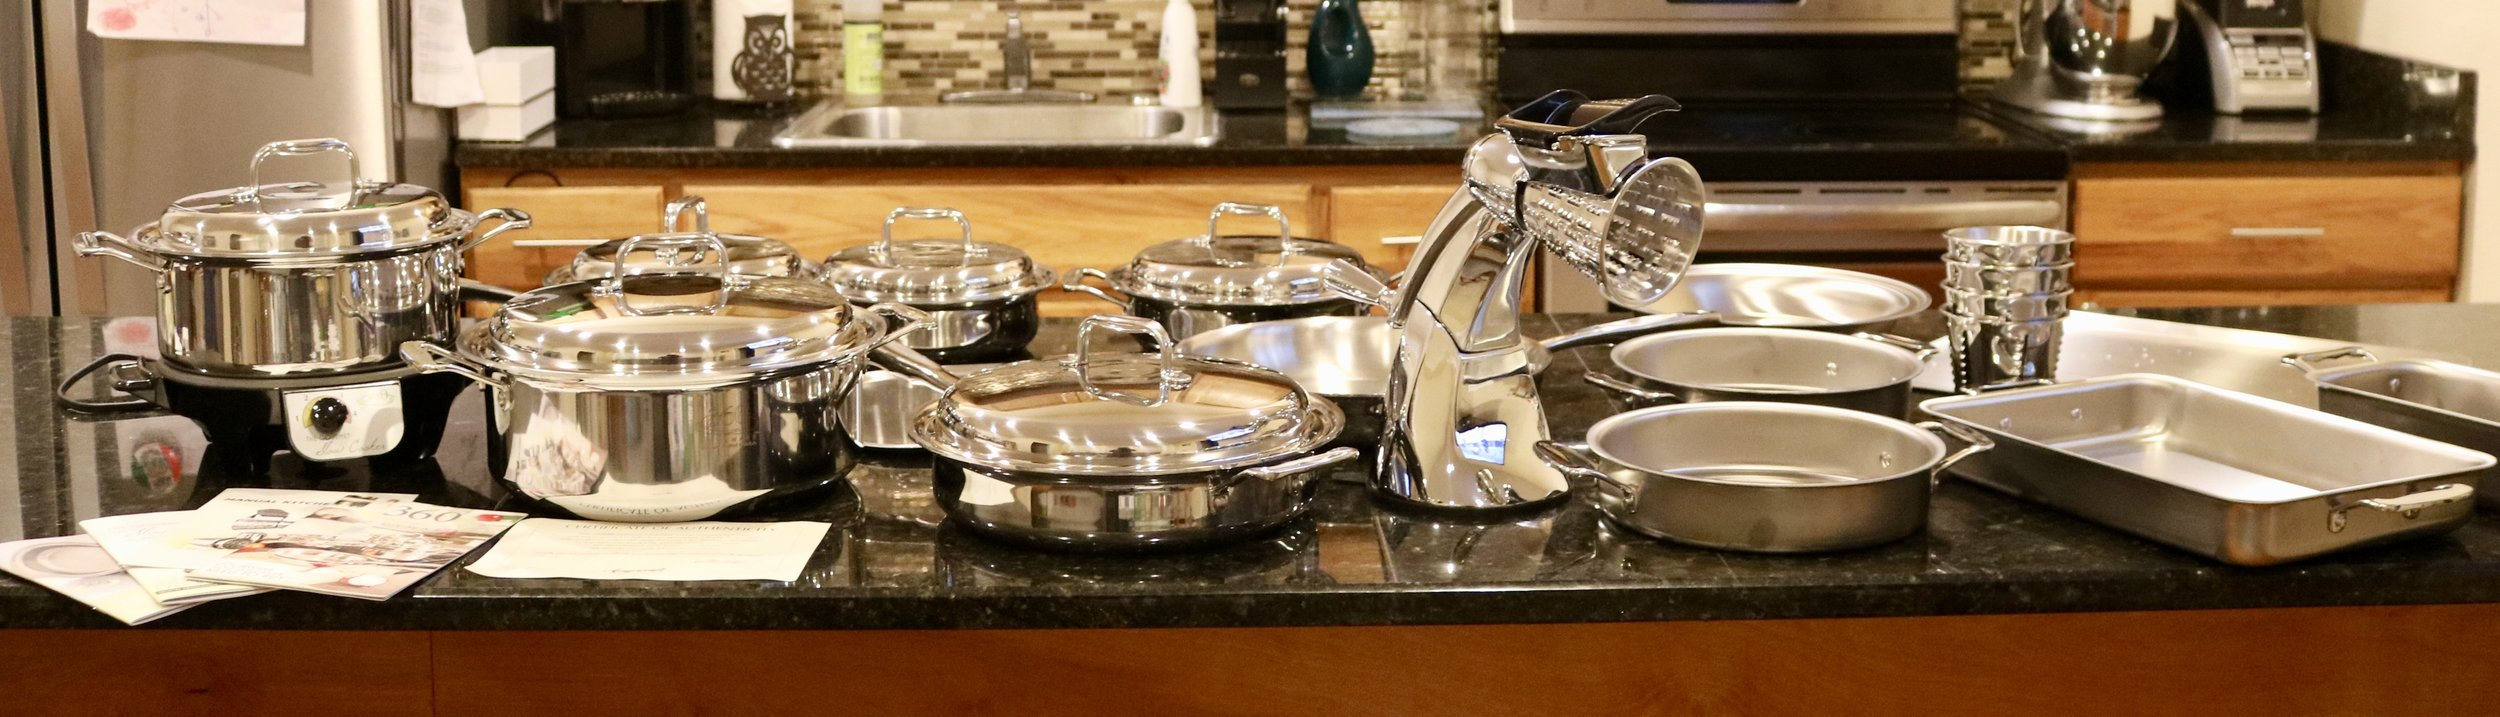 All of the 360 Cookware that is stocked in my kitchen